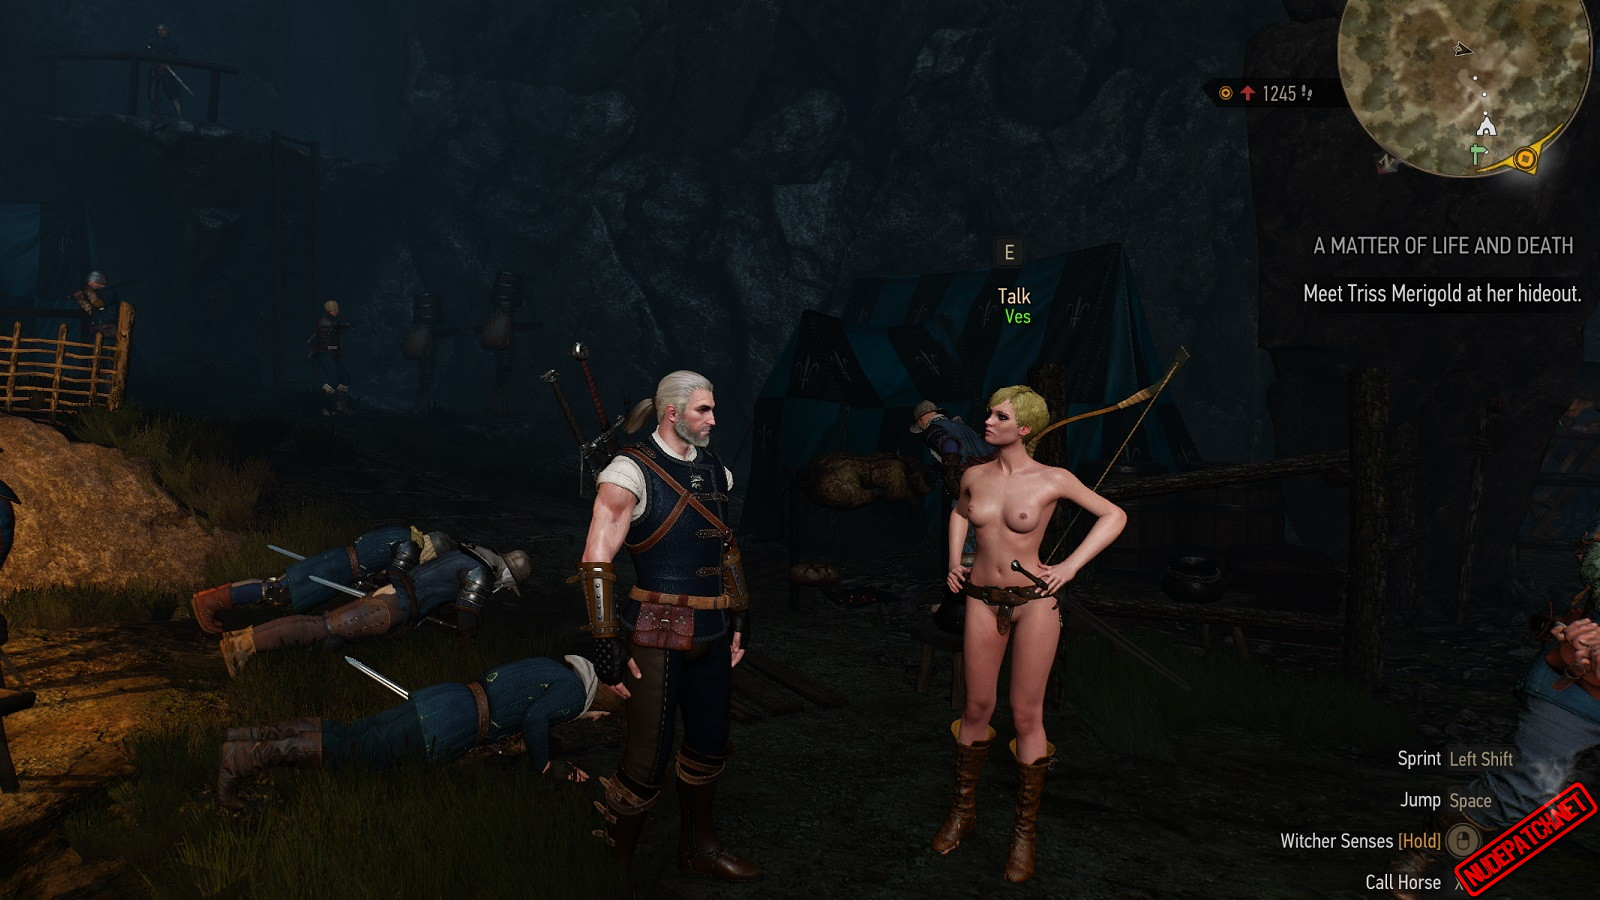 The Witcher 3 Naked Ves